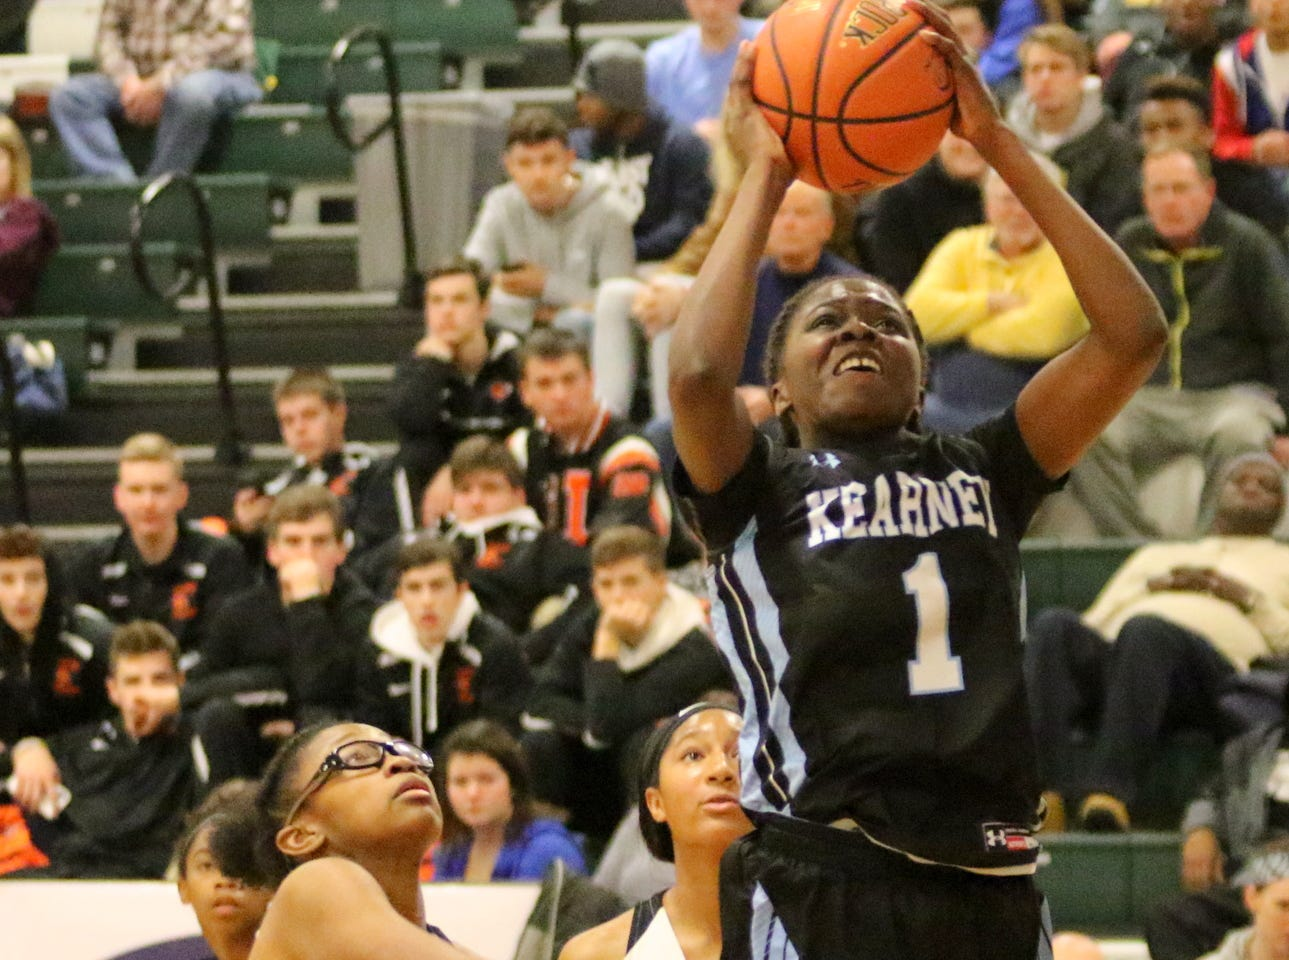 Bishop Kearney was a 70-45 winner over Cardinal O'Hara in the girls championship game at the Josh Palmer Fund Elmira Holiday Inn Classic on Dec. 30, 2018 at Elmira High School.